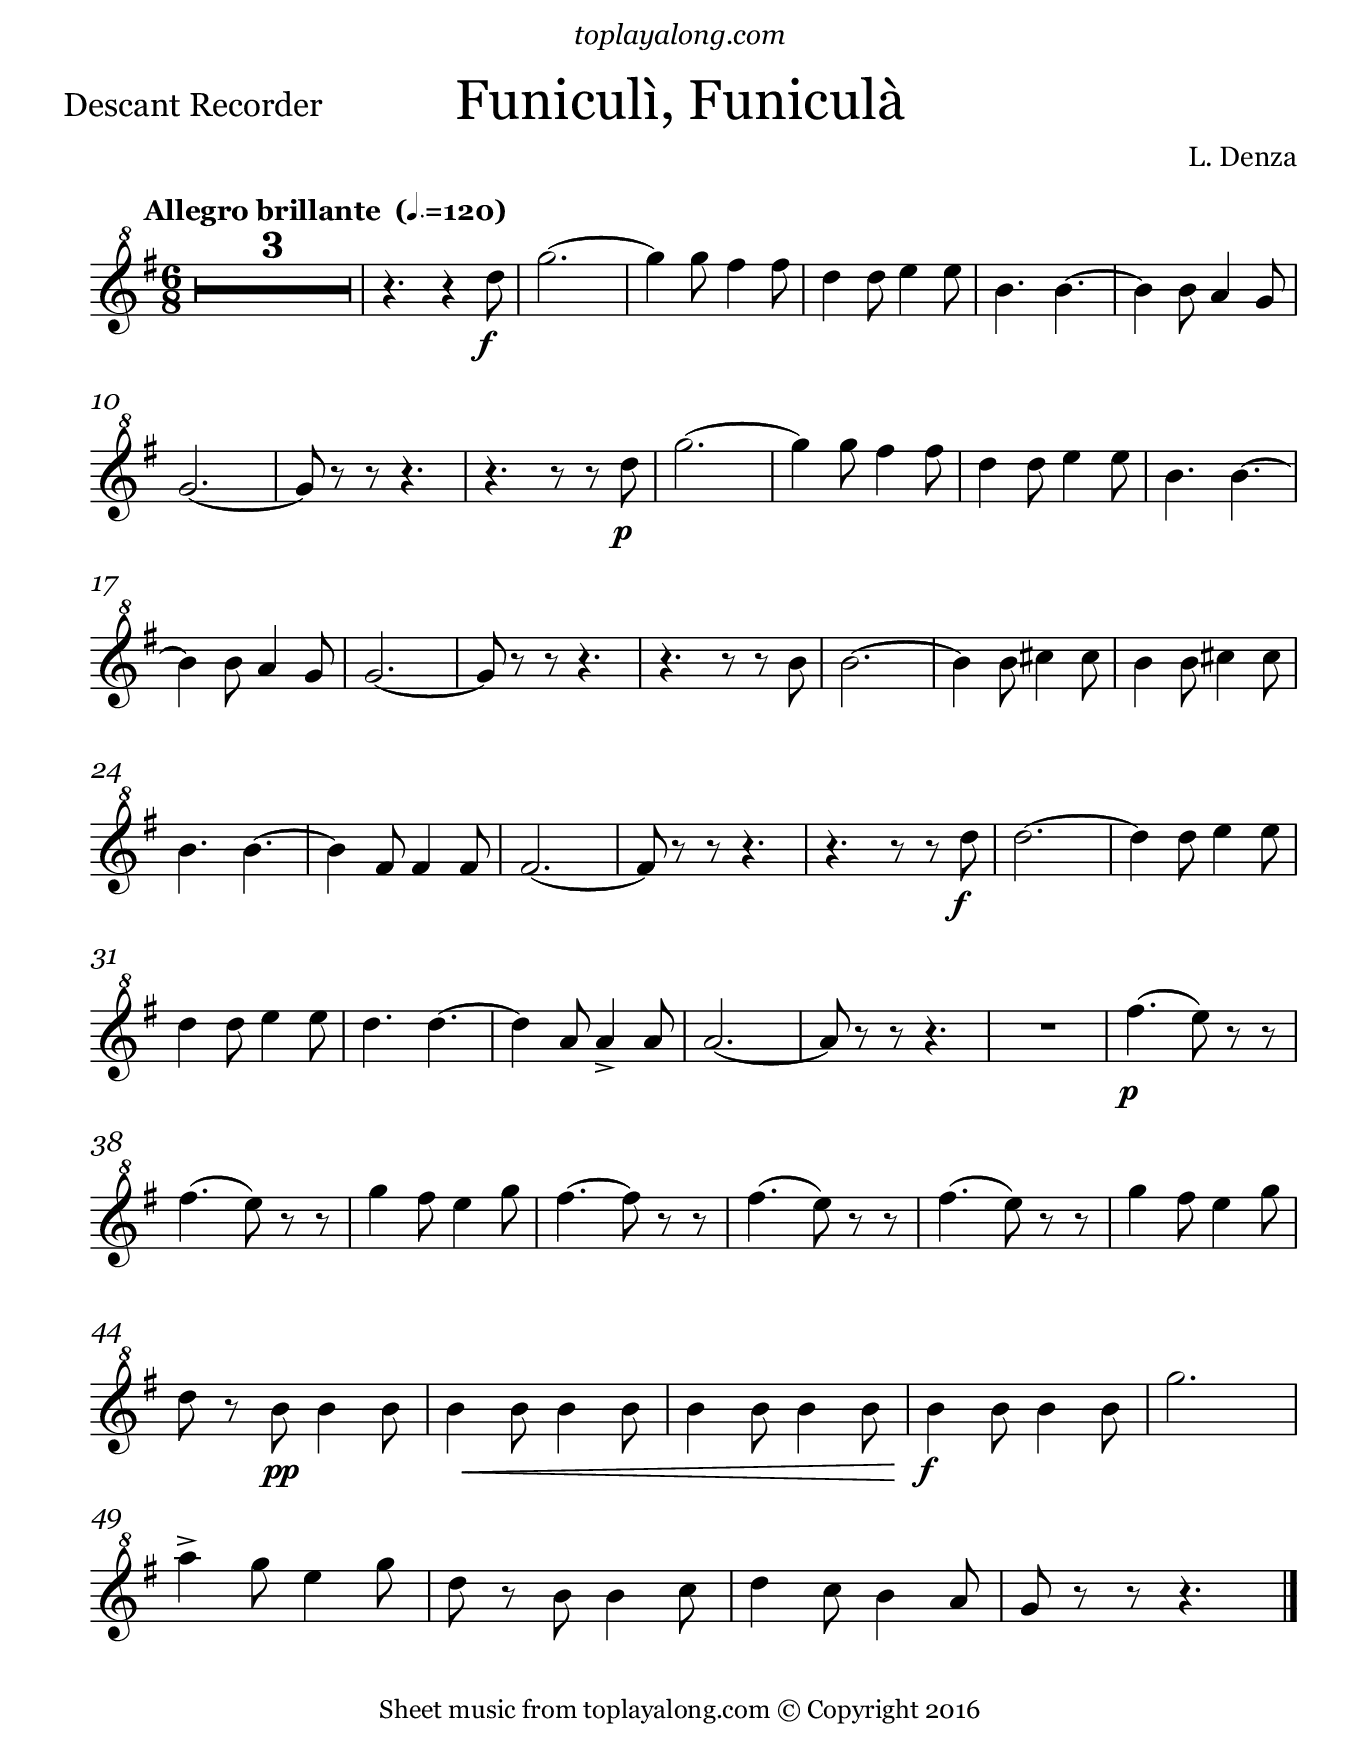 Funiculì, Funiculà by Denza. Sheet music for Recorder, page 1.